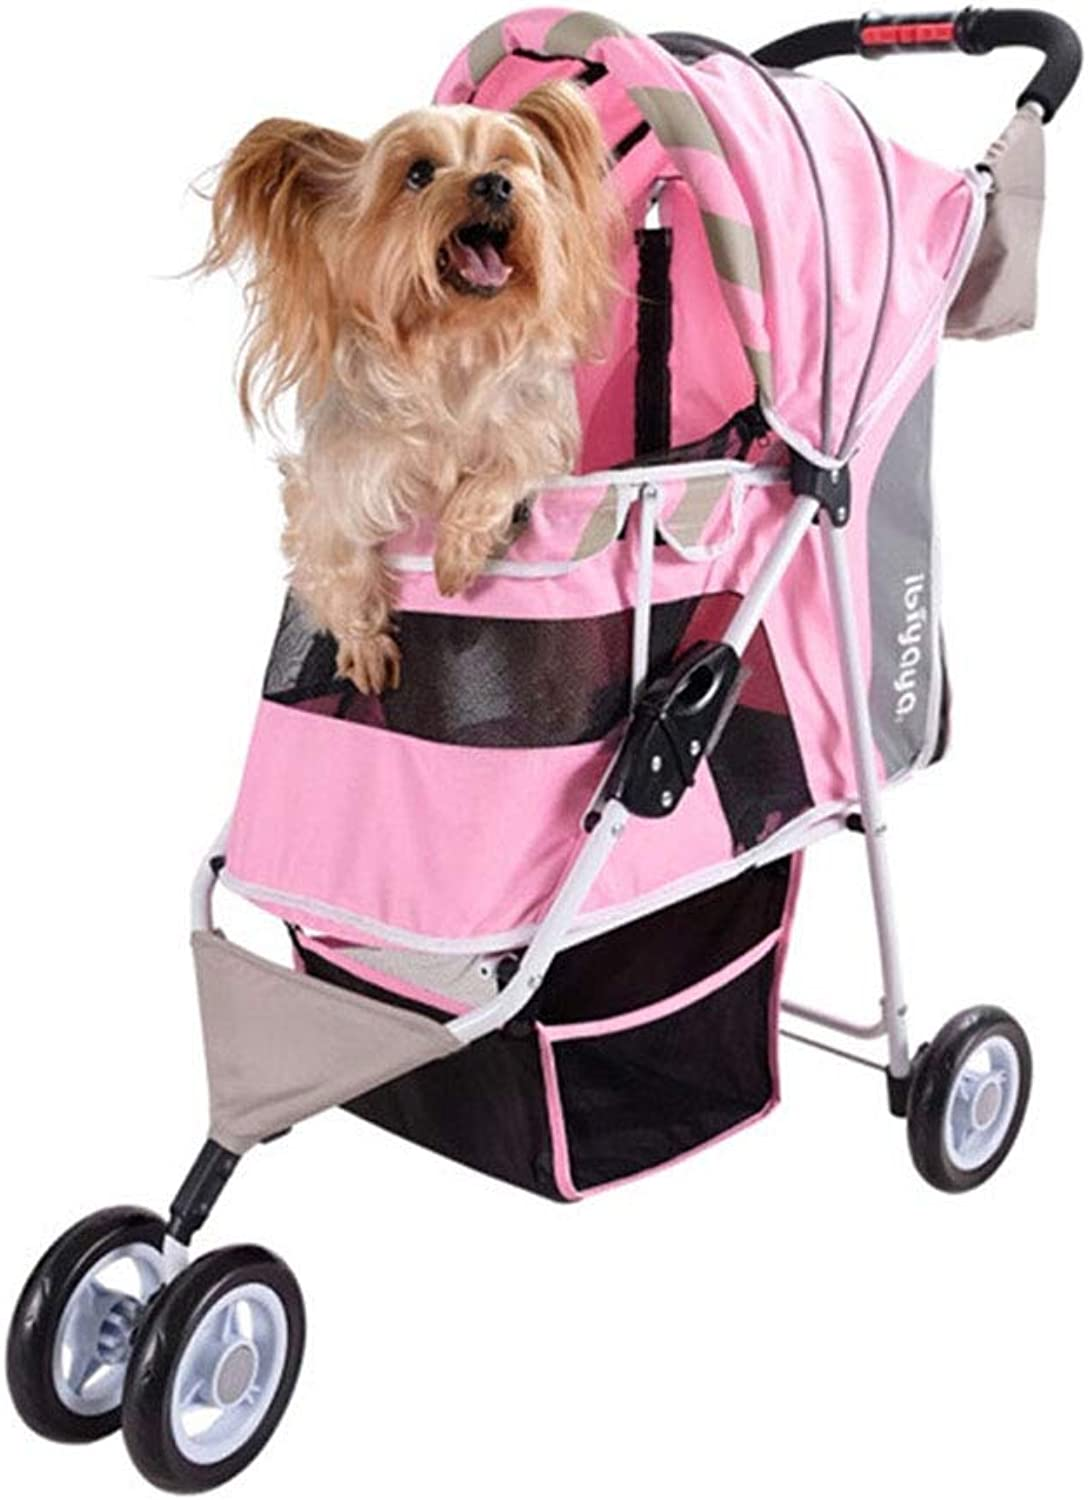 MEIHAO Pet Stroller for Cats Dogs, Zipperless Entry, Small Animals Carrier Cage Jogging Travel Easy Fold with Removable Liner, Storage Basket + Cup Bag